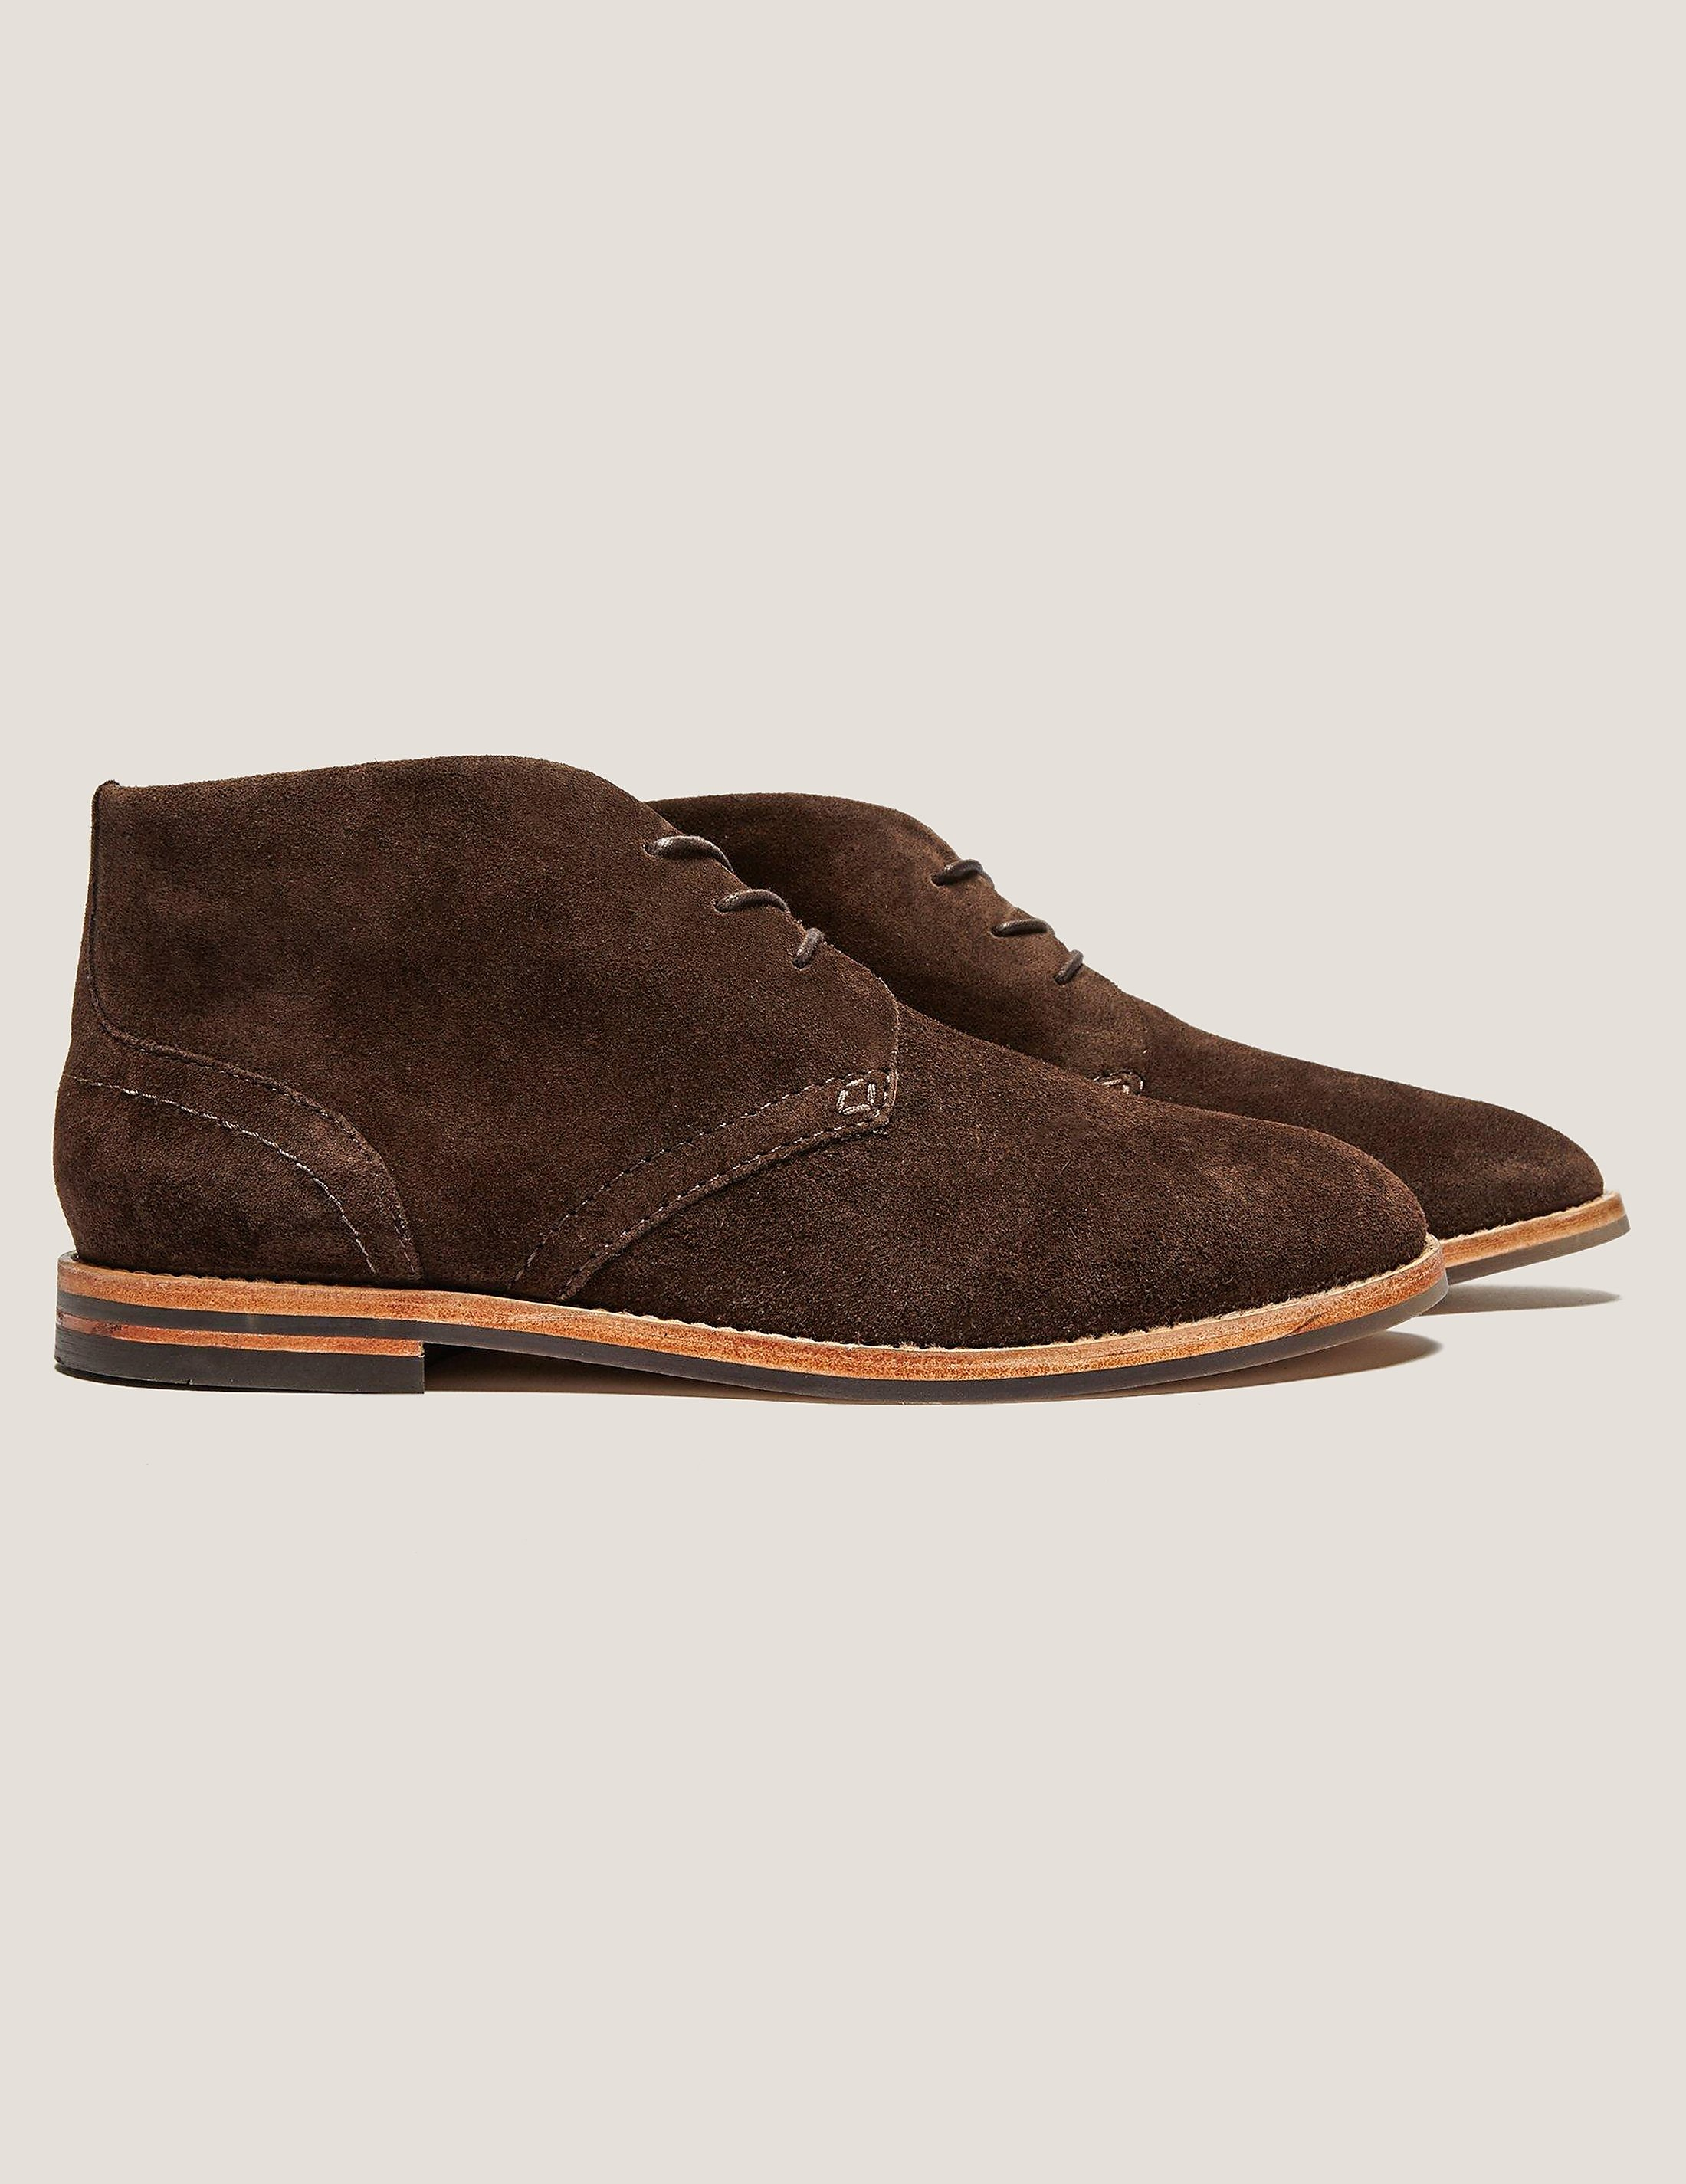 H by Hudson Houghton Suede Shoes